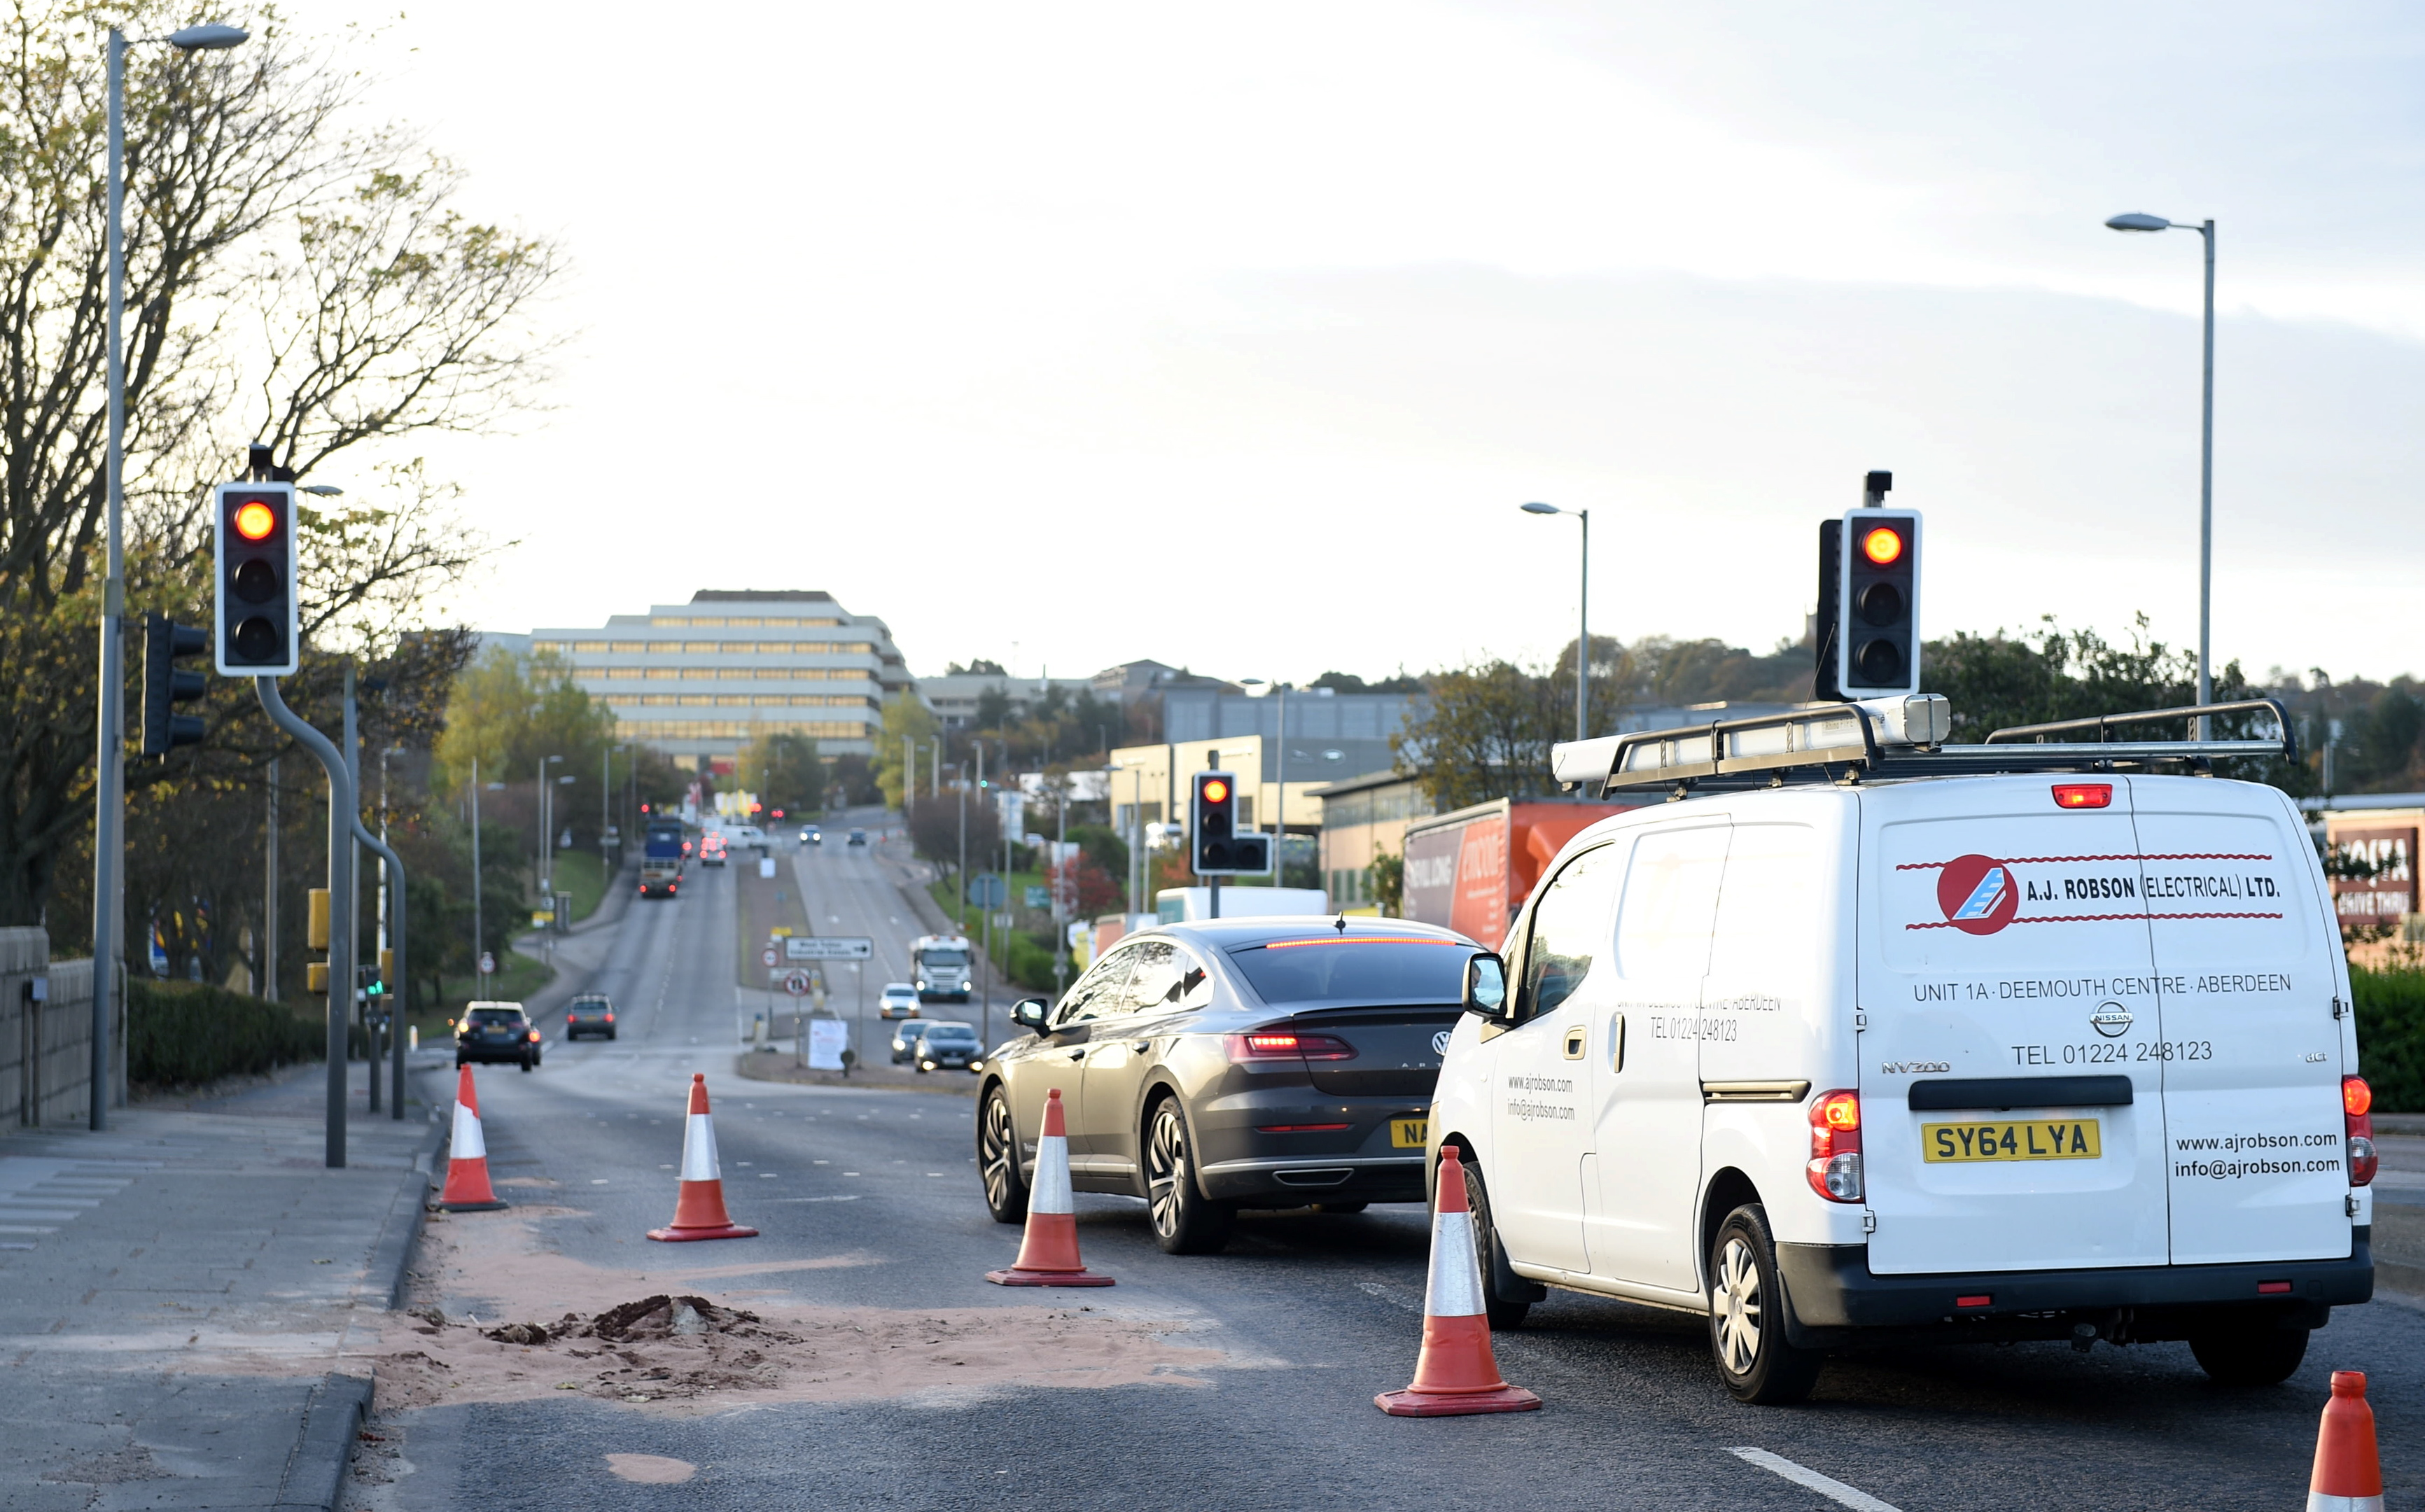 A section of the southbound lane on Wellington Road has been closed